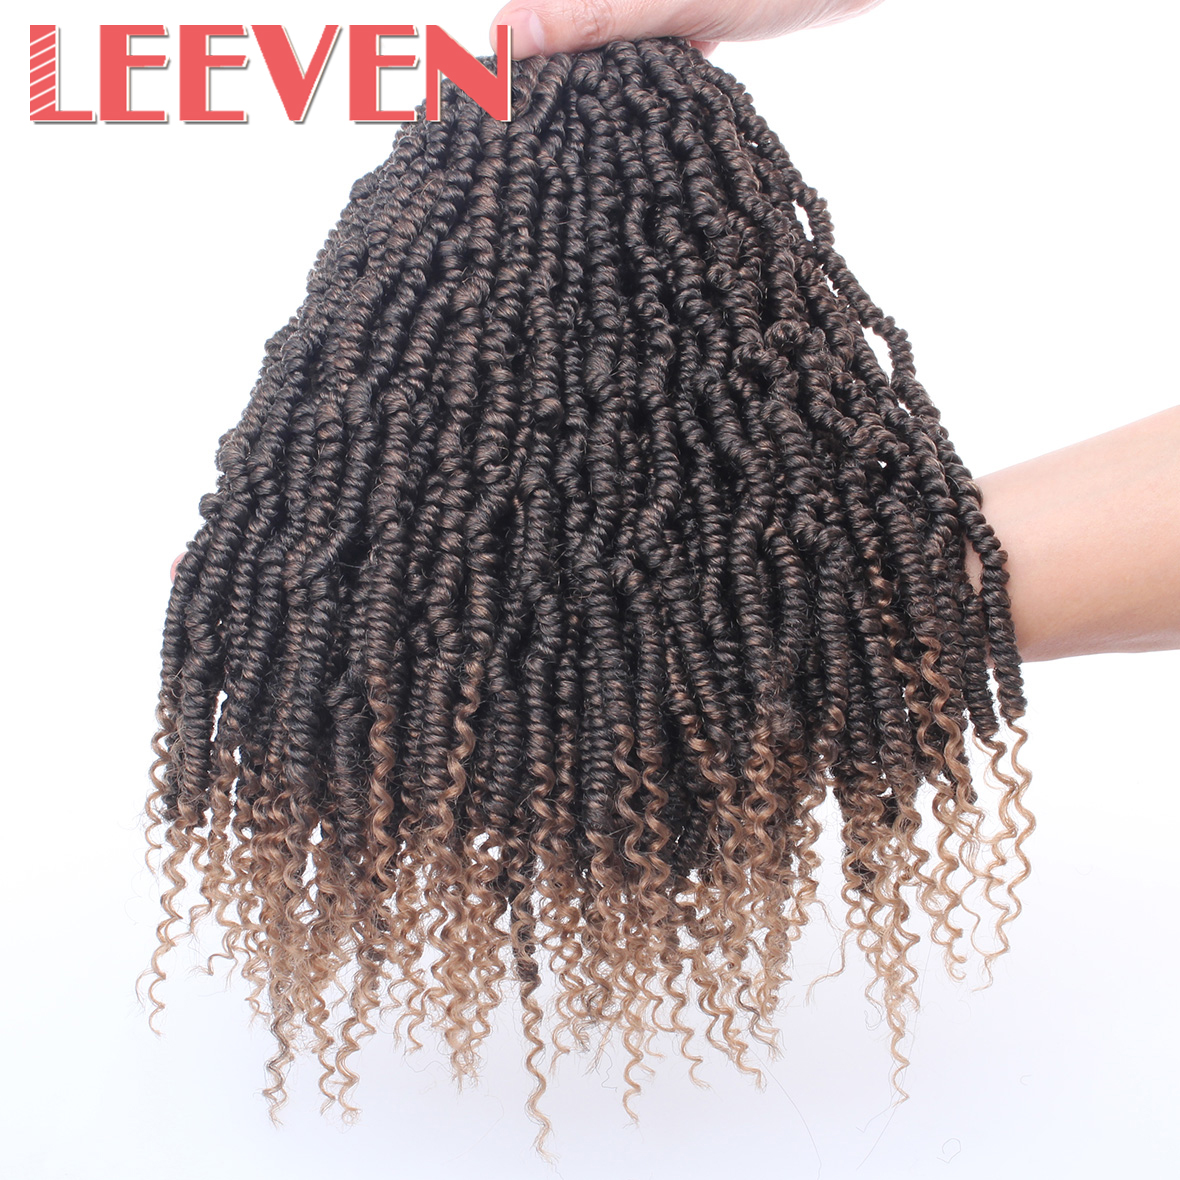 Leeven Pre Twisted Passion Twist Crochet Hair 14'' 18'' Synthetic Crochet Braids Hair Pre Looped Fluffy Twists Braiding Hair